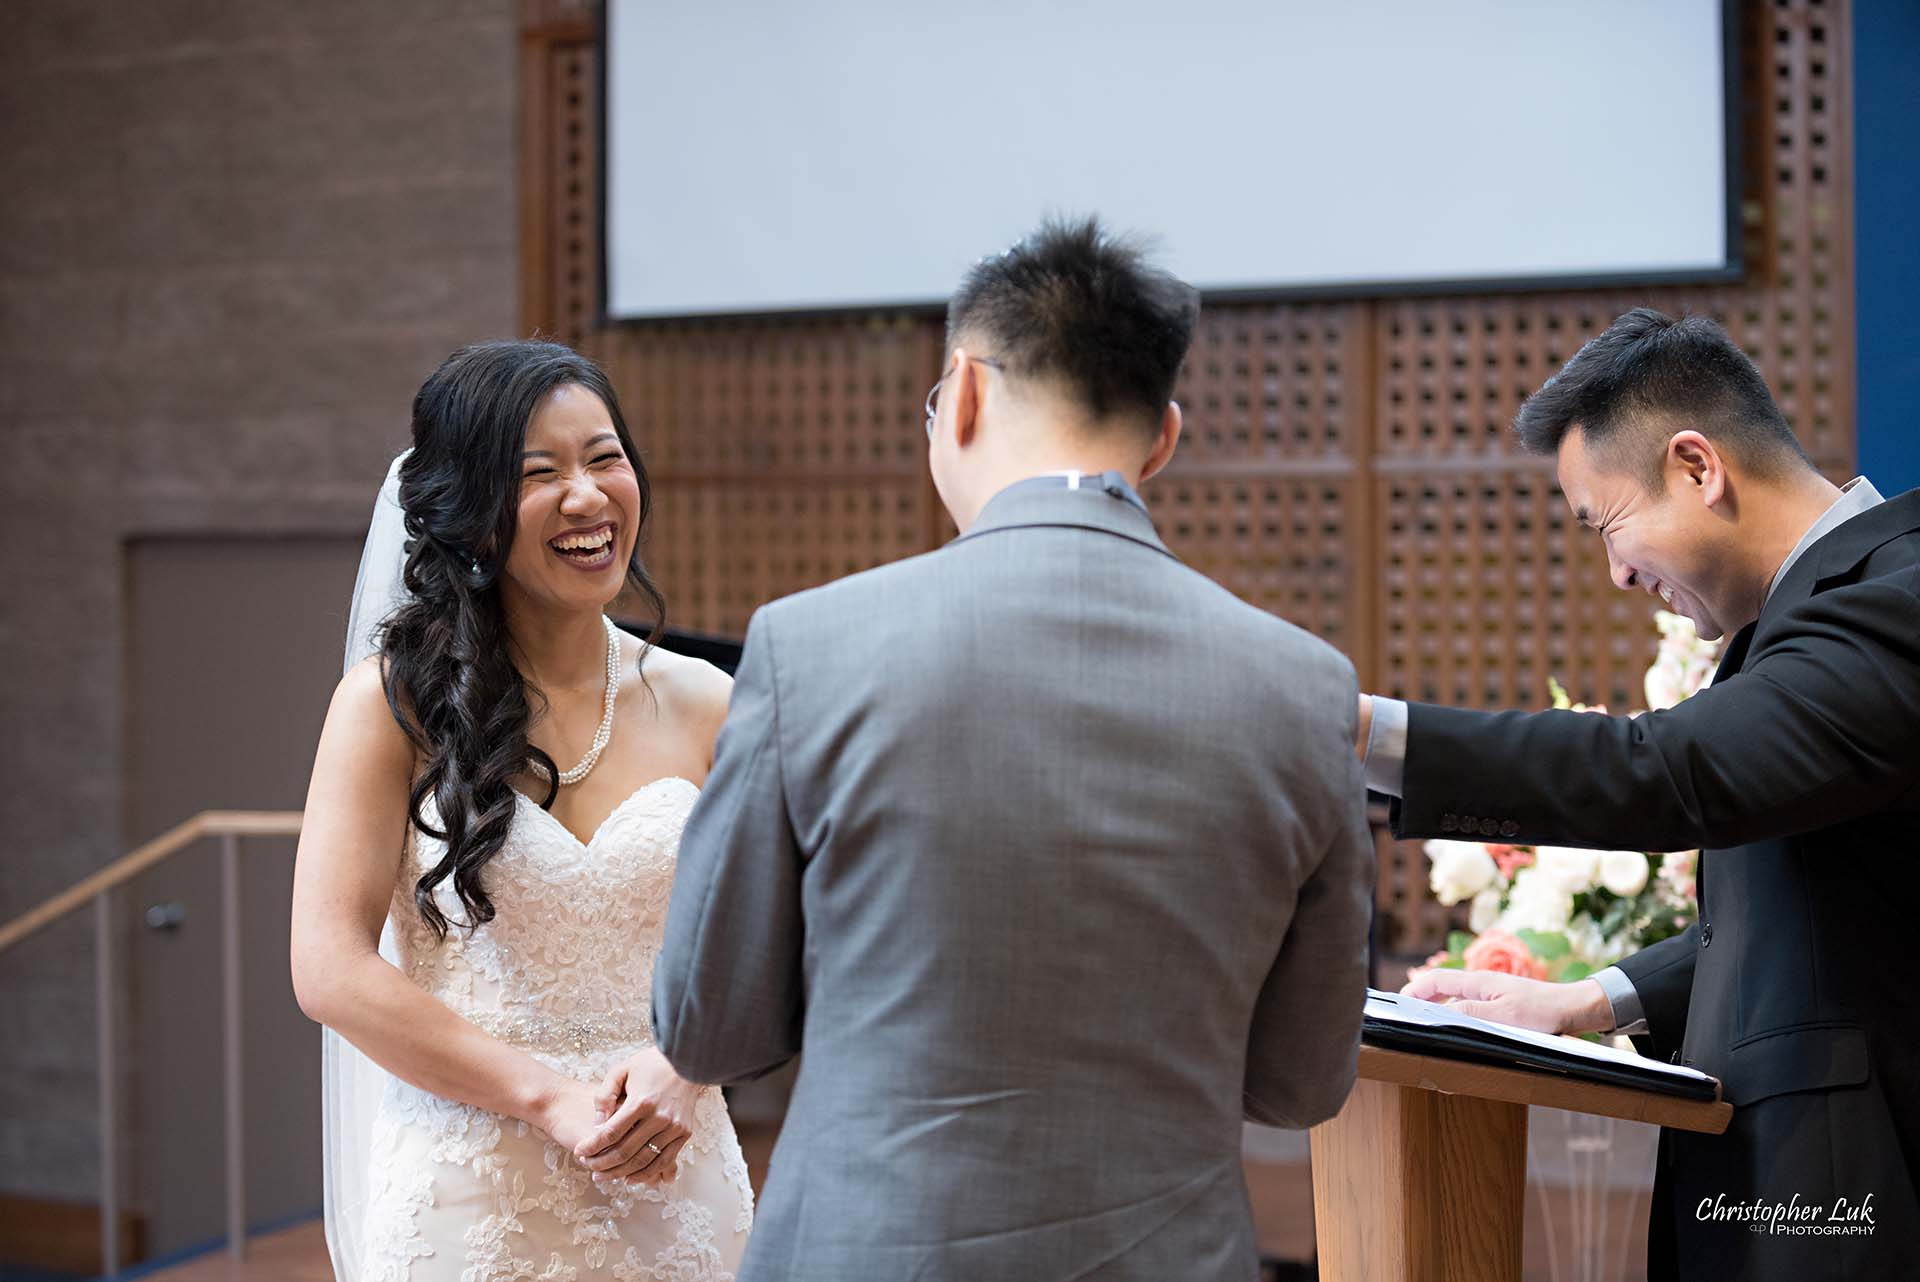 Christopher Luk Toronto Wedding Photographer Trinity York Mills Church Ceremony Sanctuary Candid Natural Photojournalistic Groom Bride Landscape Vows Reaction Laugh